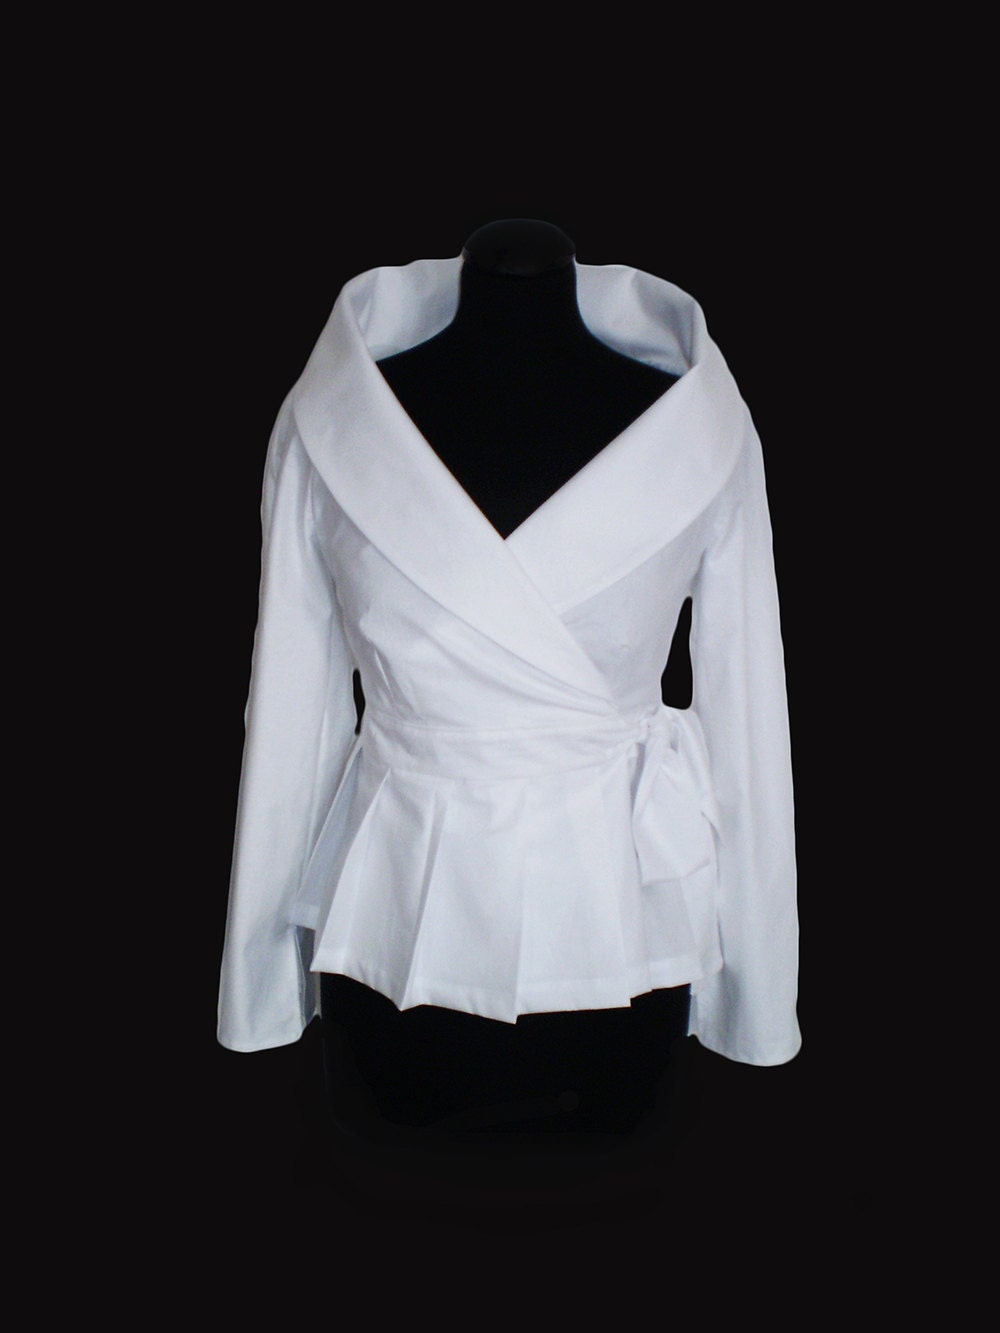 Wrap White shirt cotton blouse/ Smart casual Work/ Career